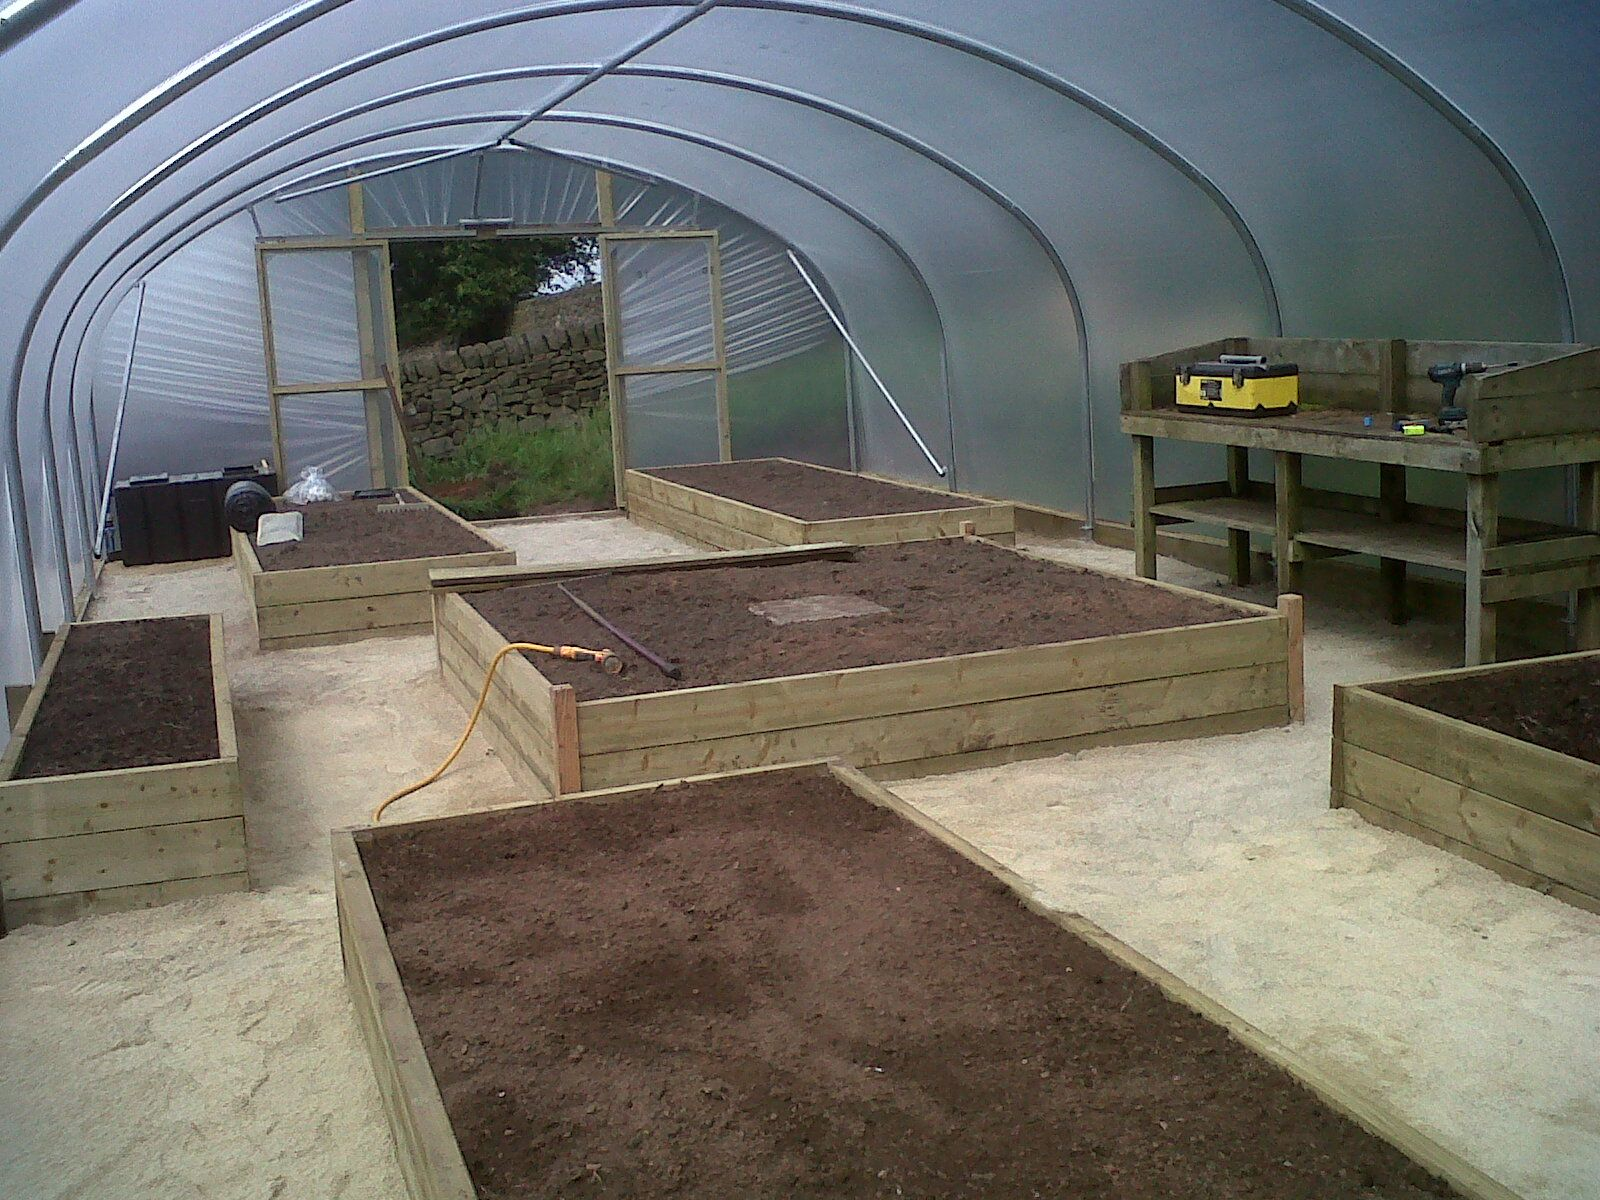 Raised beds layout idea for an 18ft x 42ft polytunnel